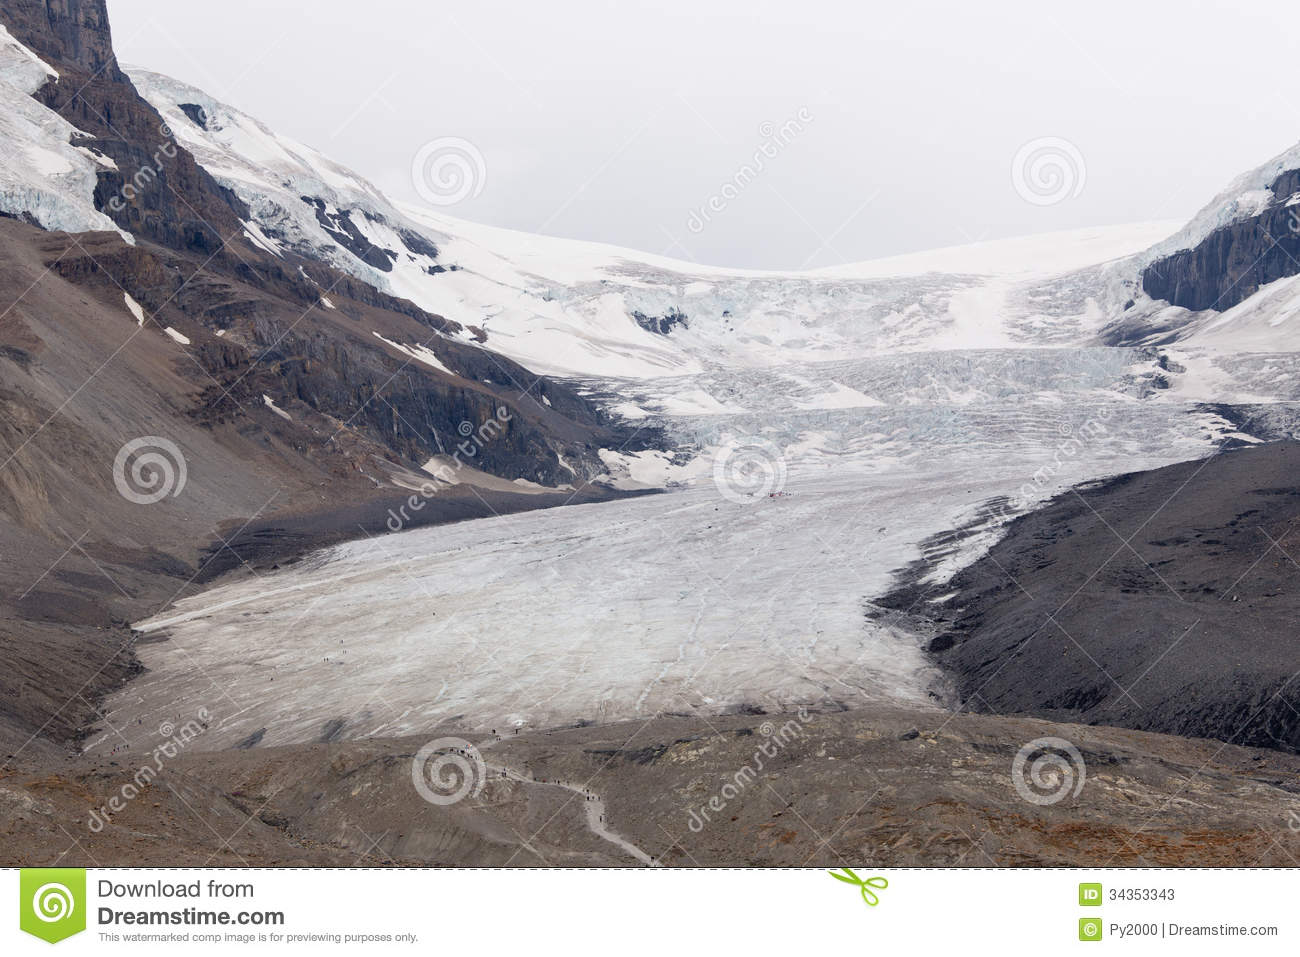 Athabascagletsjer, Colombia Icefield